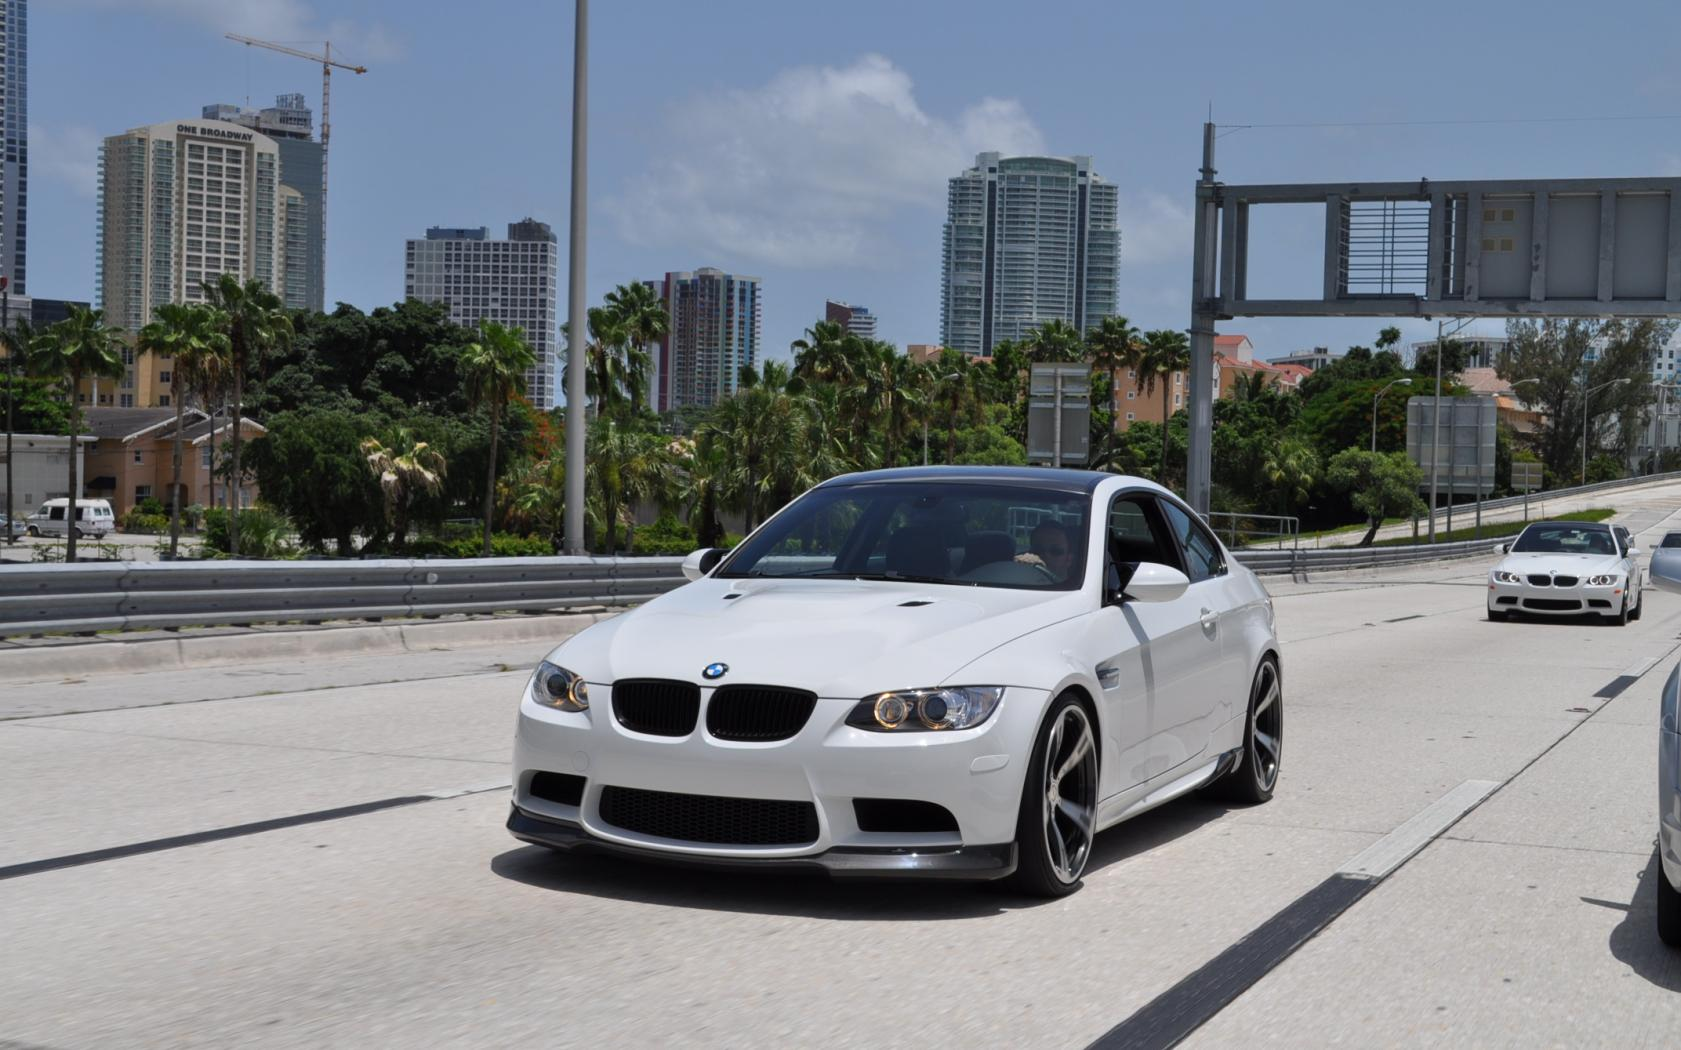 Craigslist South Coast Cars For Sale By Dealer Tampa Bay